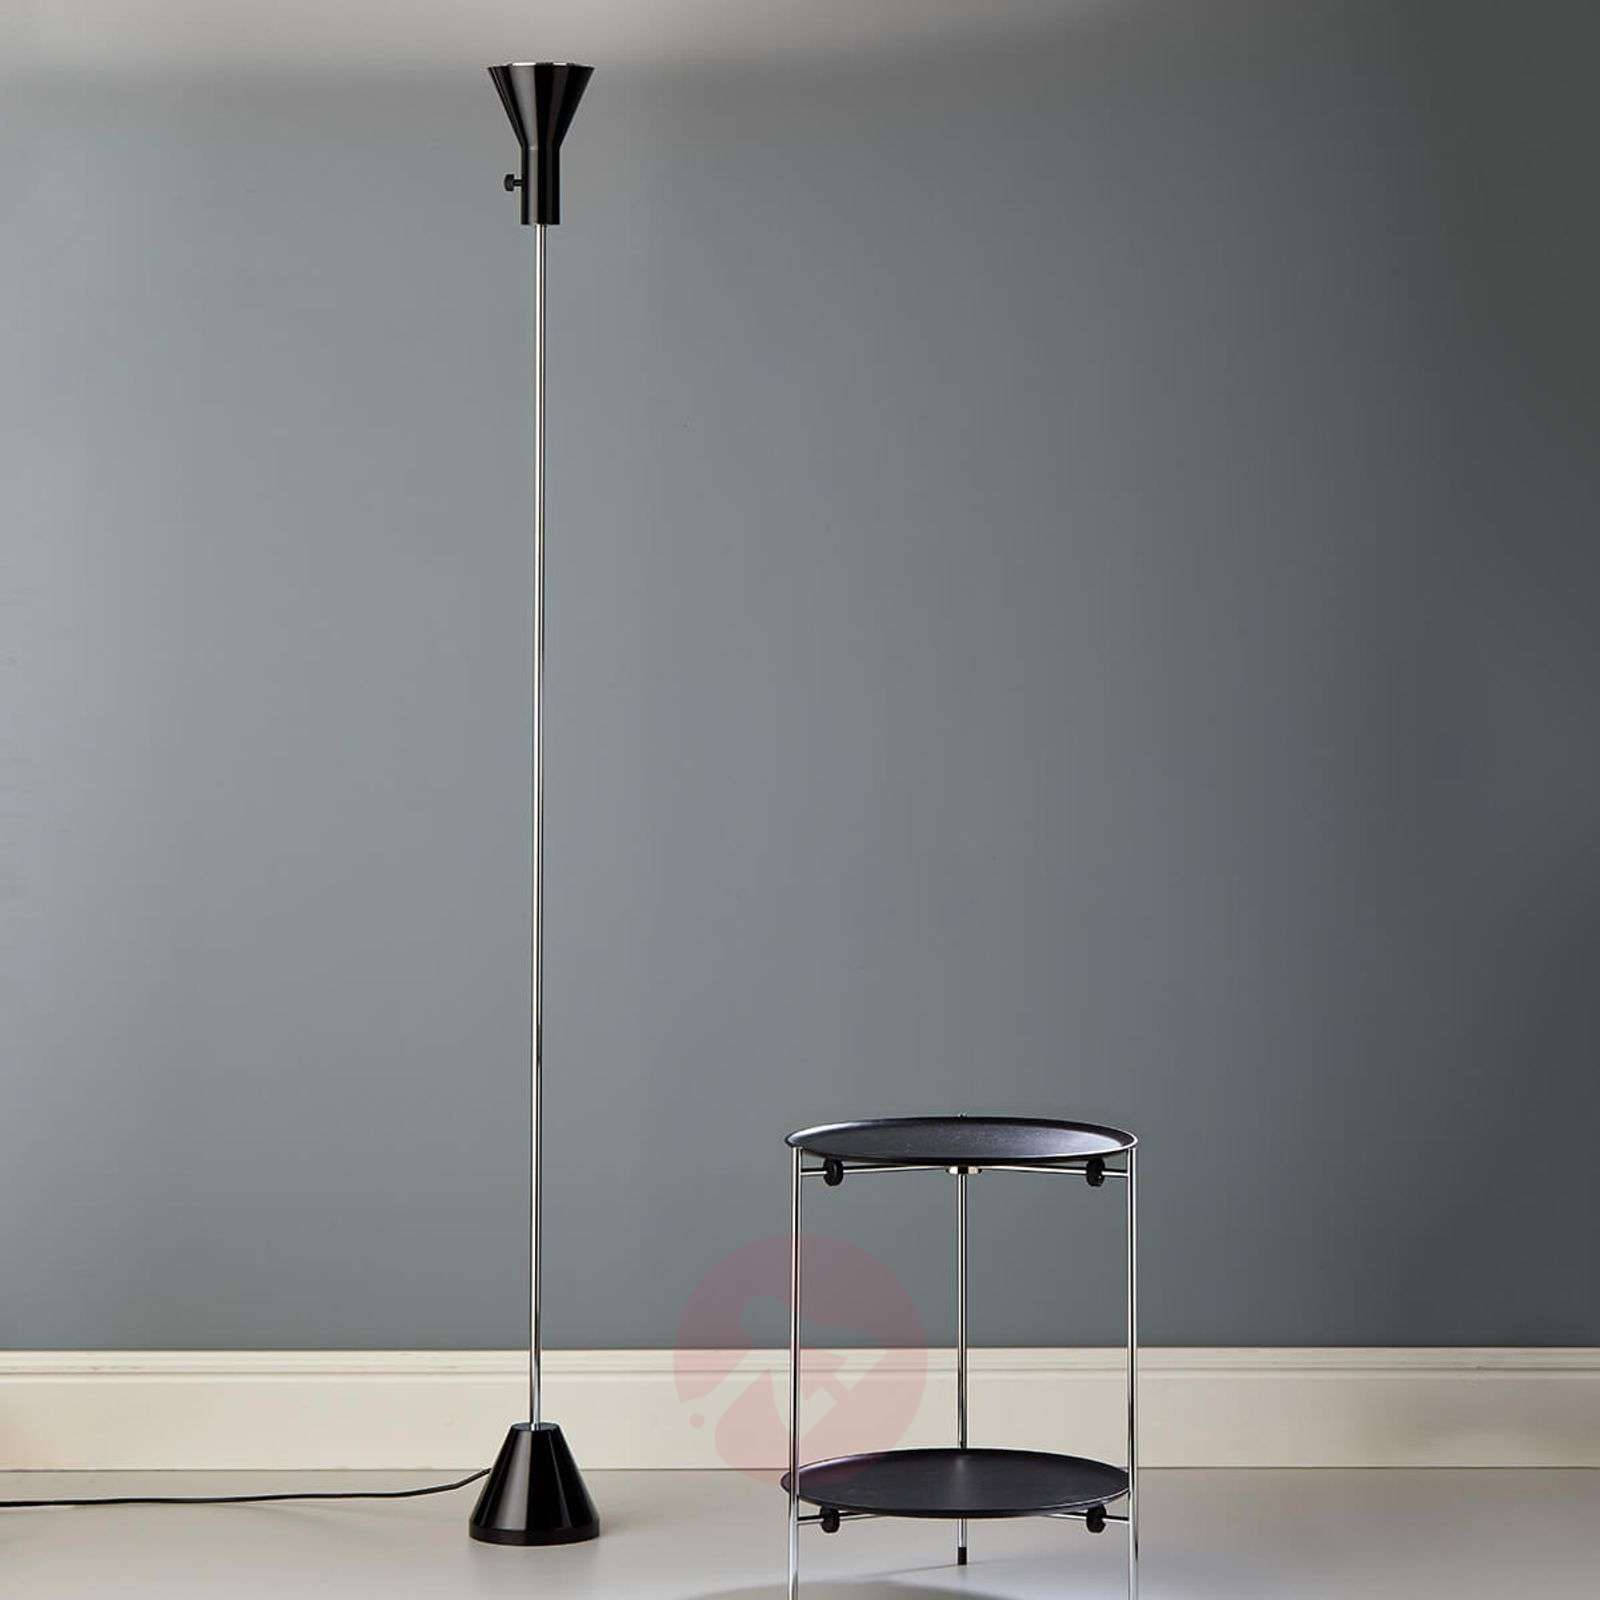 Narrow LED floor lamp Gru with dimmer-9030224-01